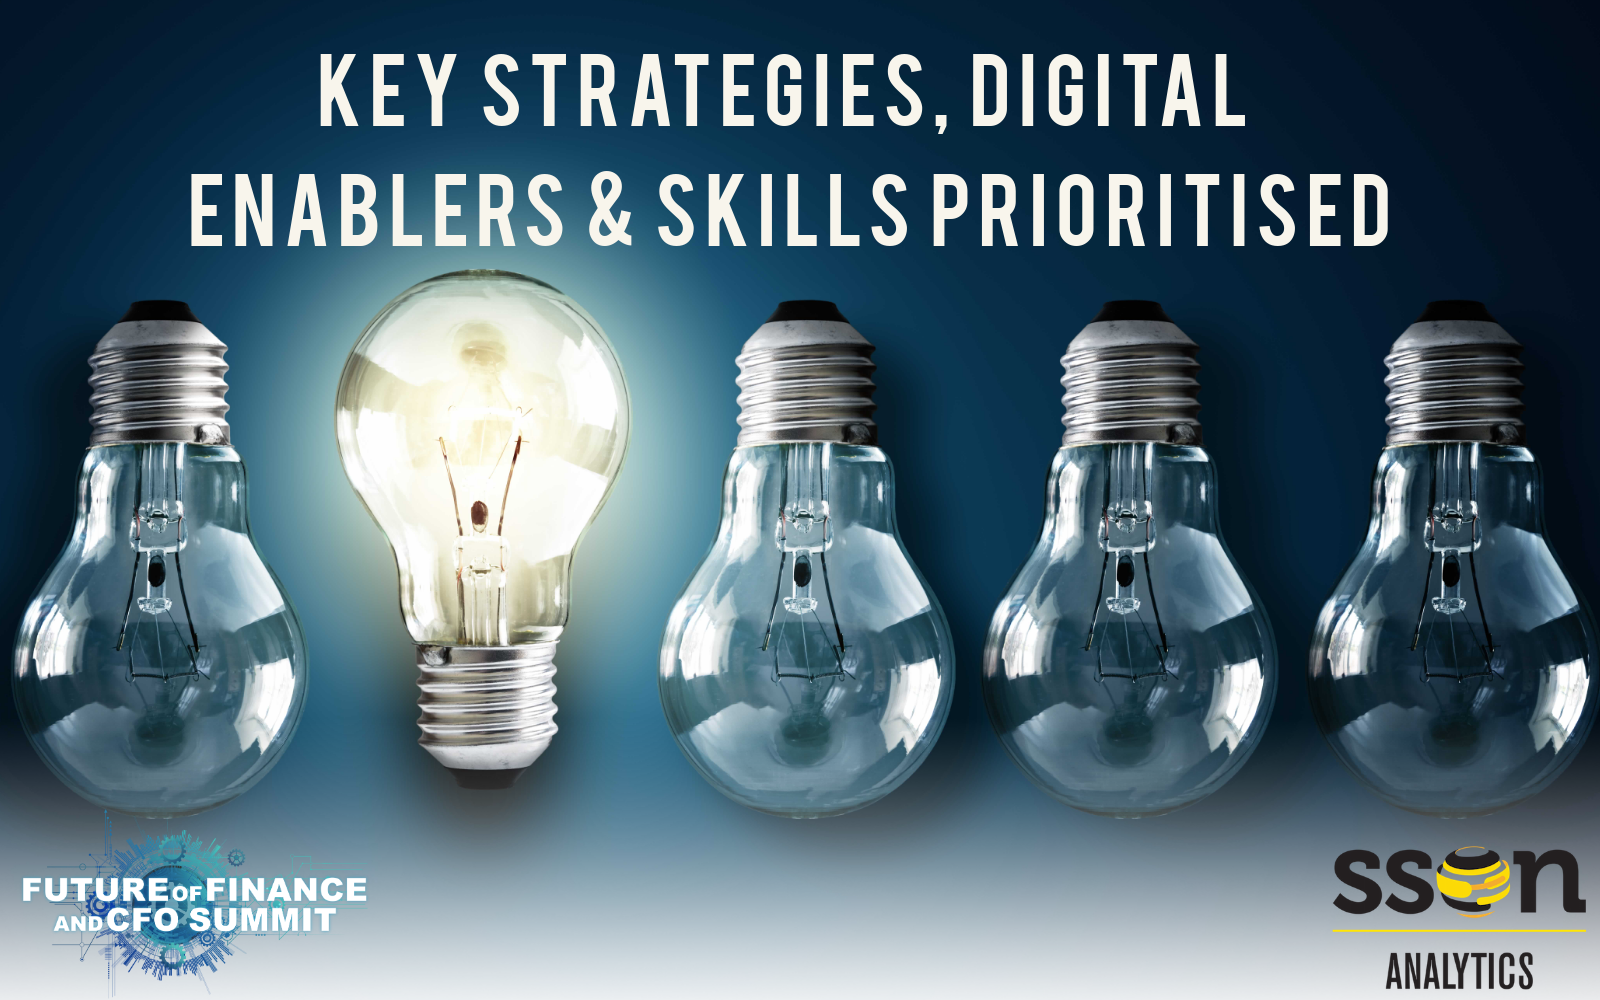 Key Strategies, Digital Enablers and Skills Prioritized Link